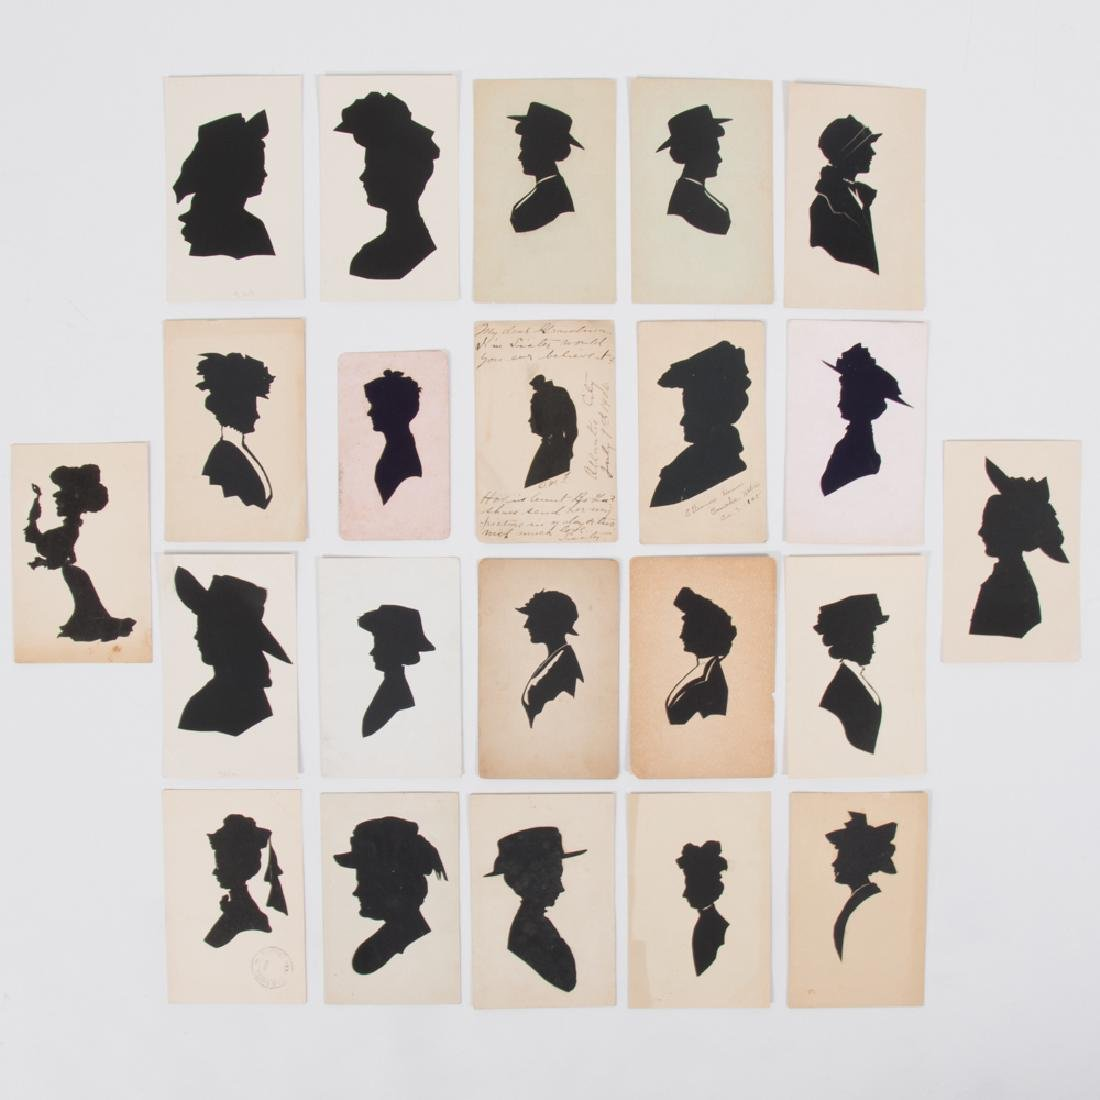 A Collection of Twenty-Two Cut Paper and Ink